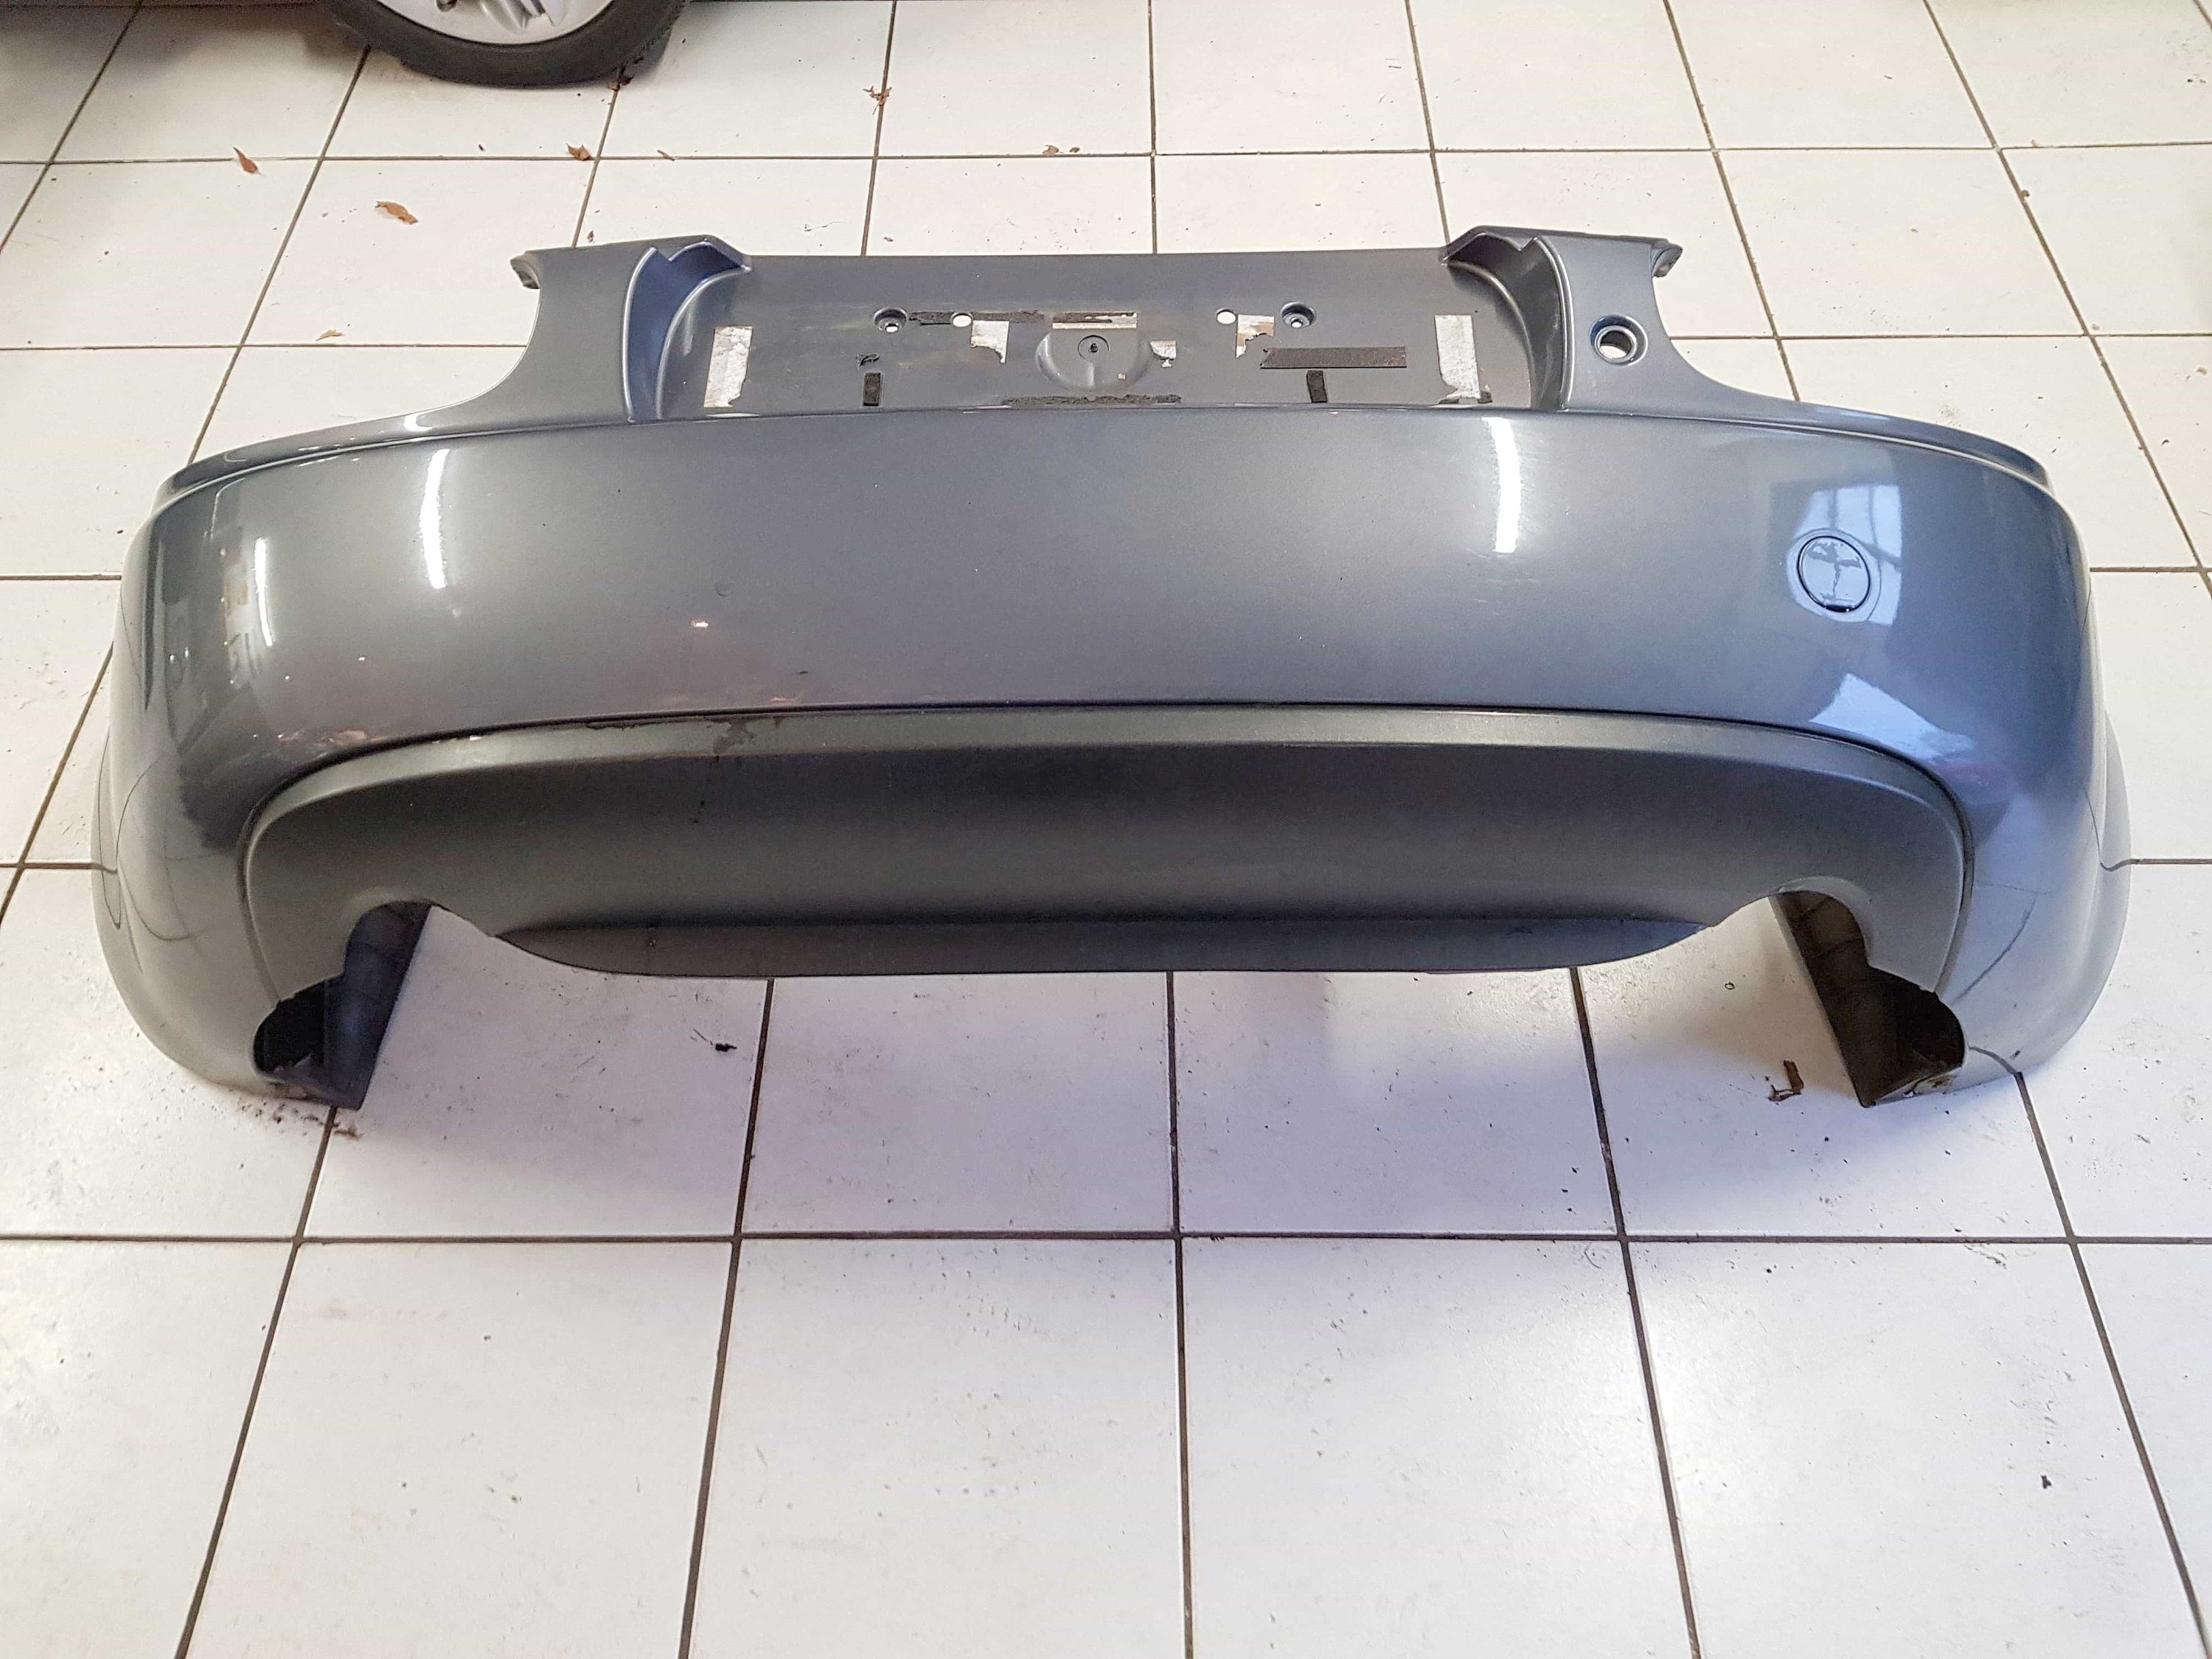 Used Rear Bumper for MX5 Mk3